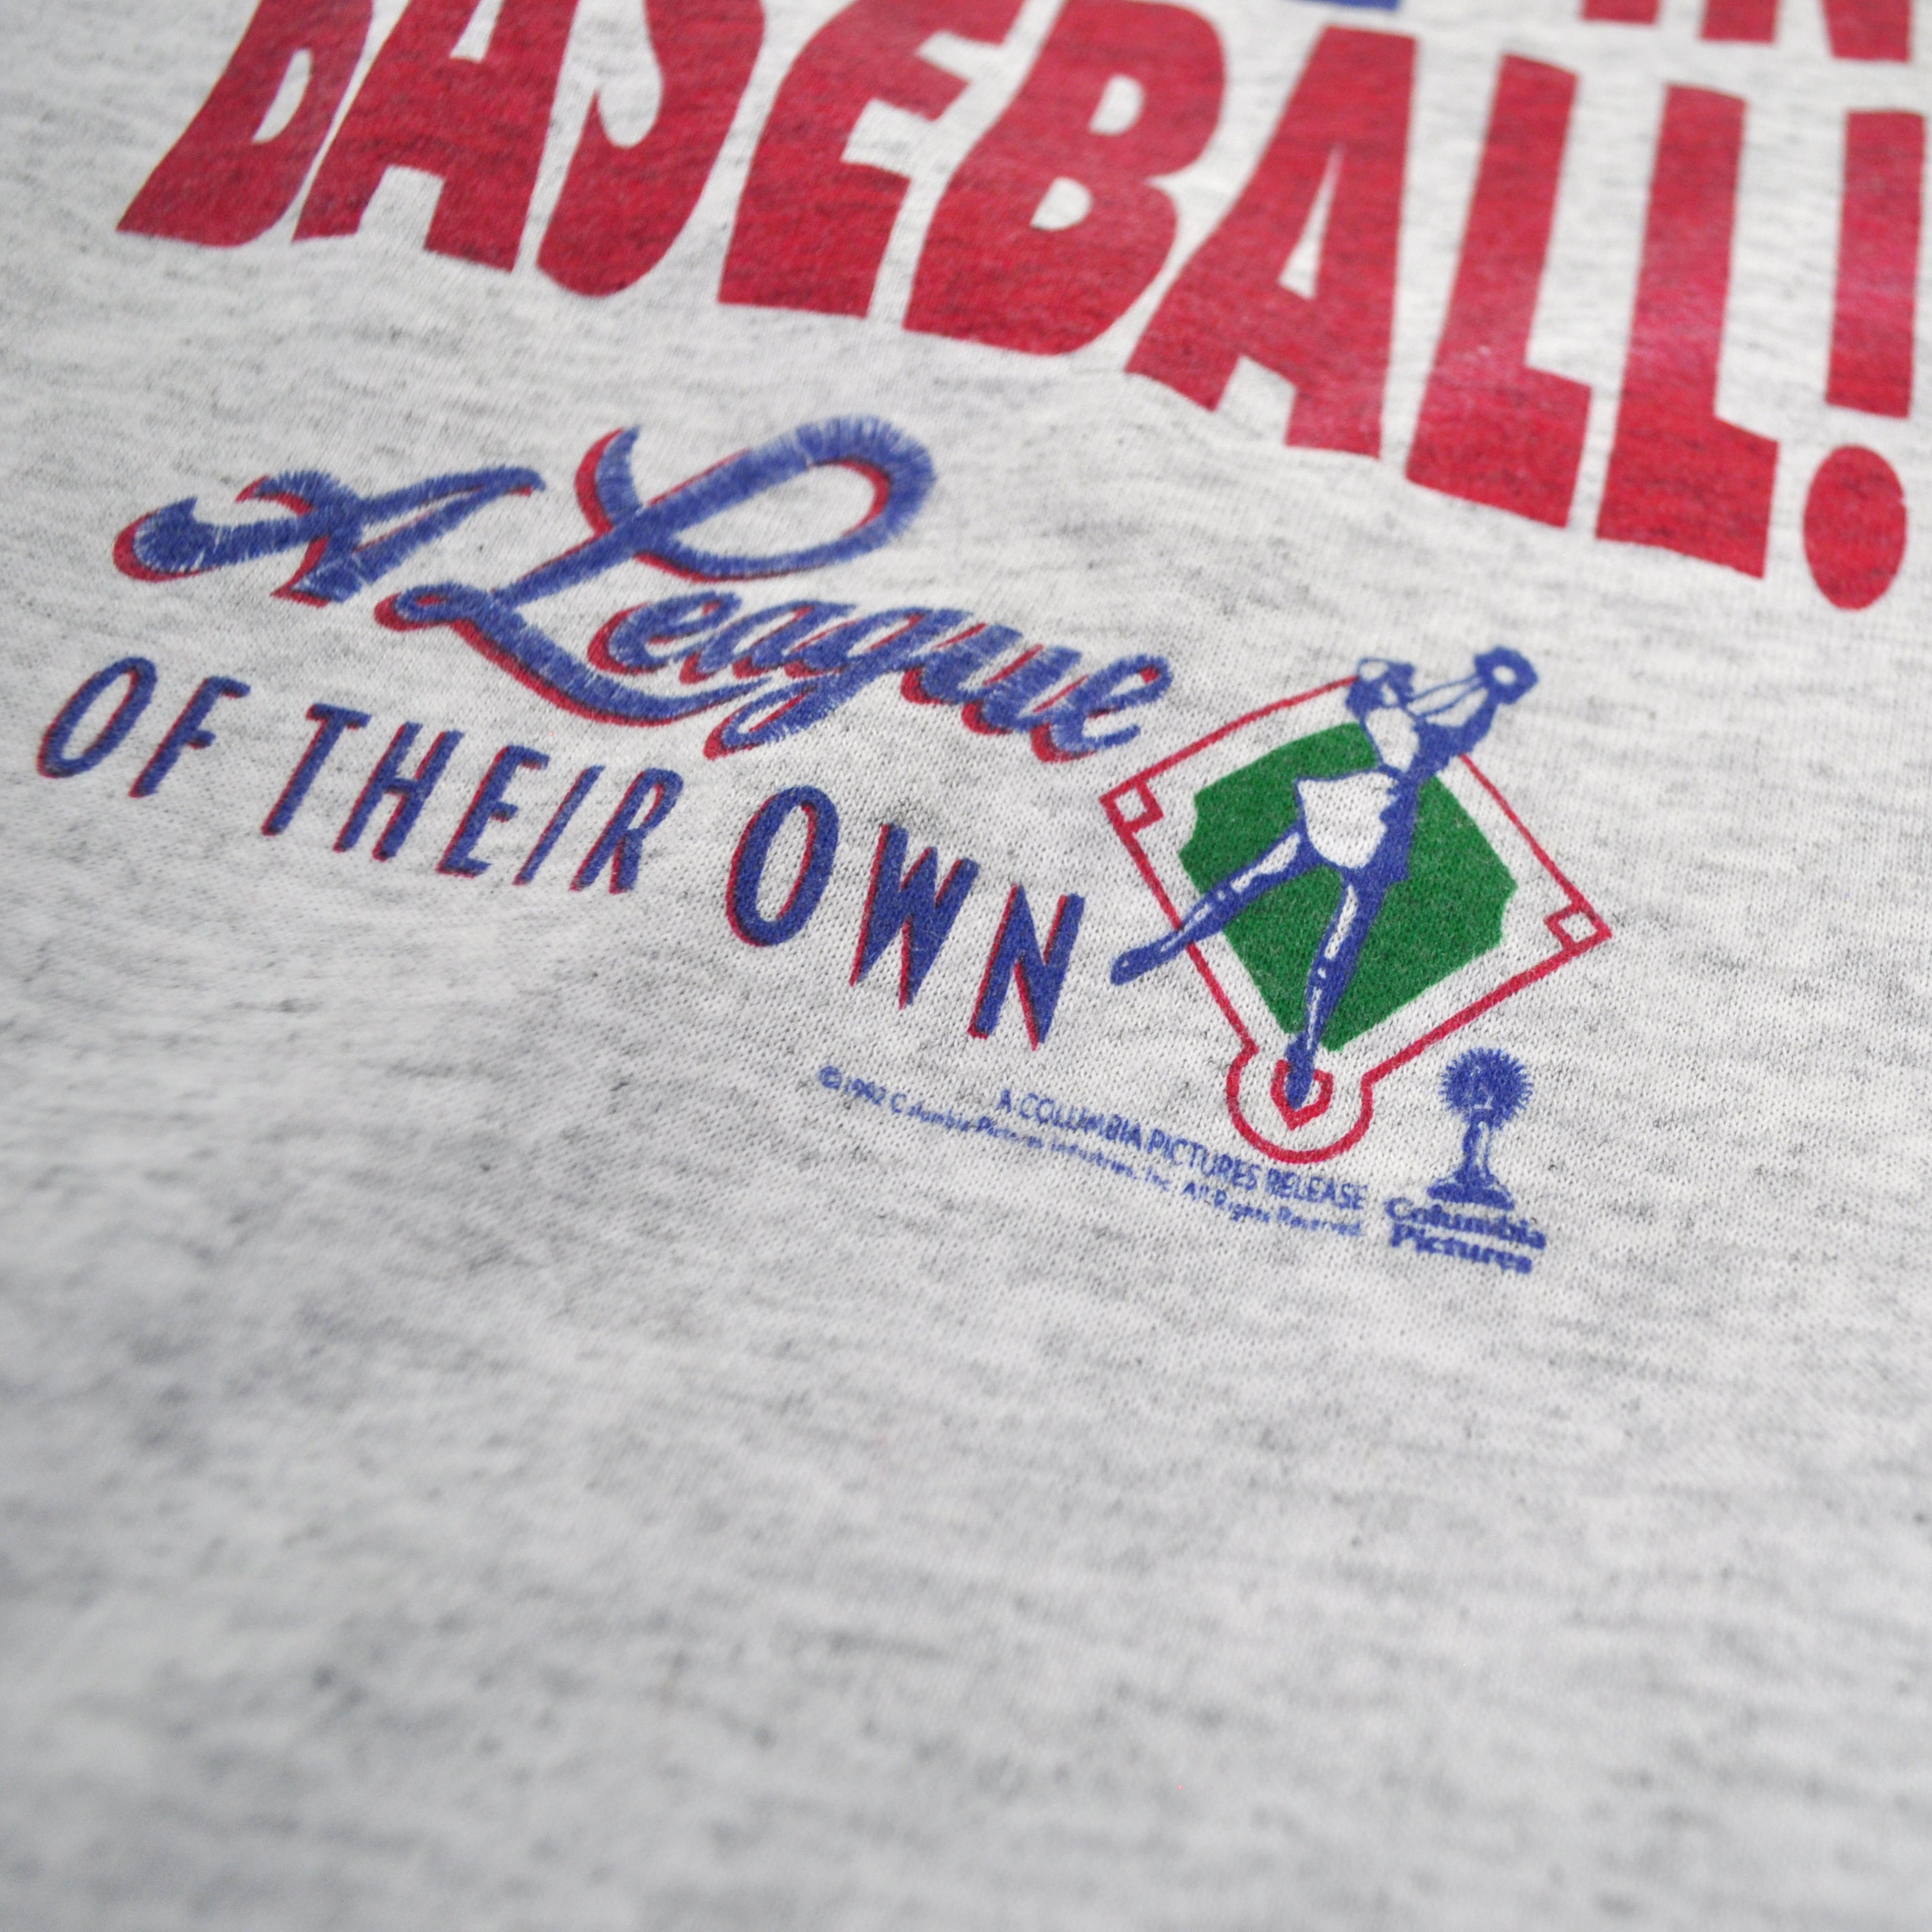 A League of Their Own - XL/TG